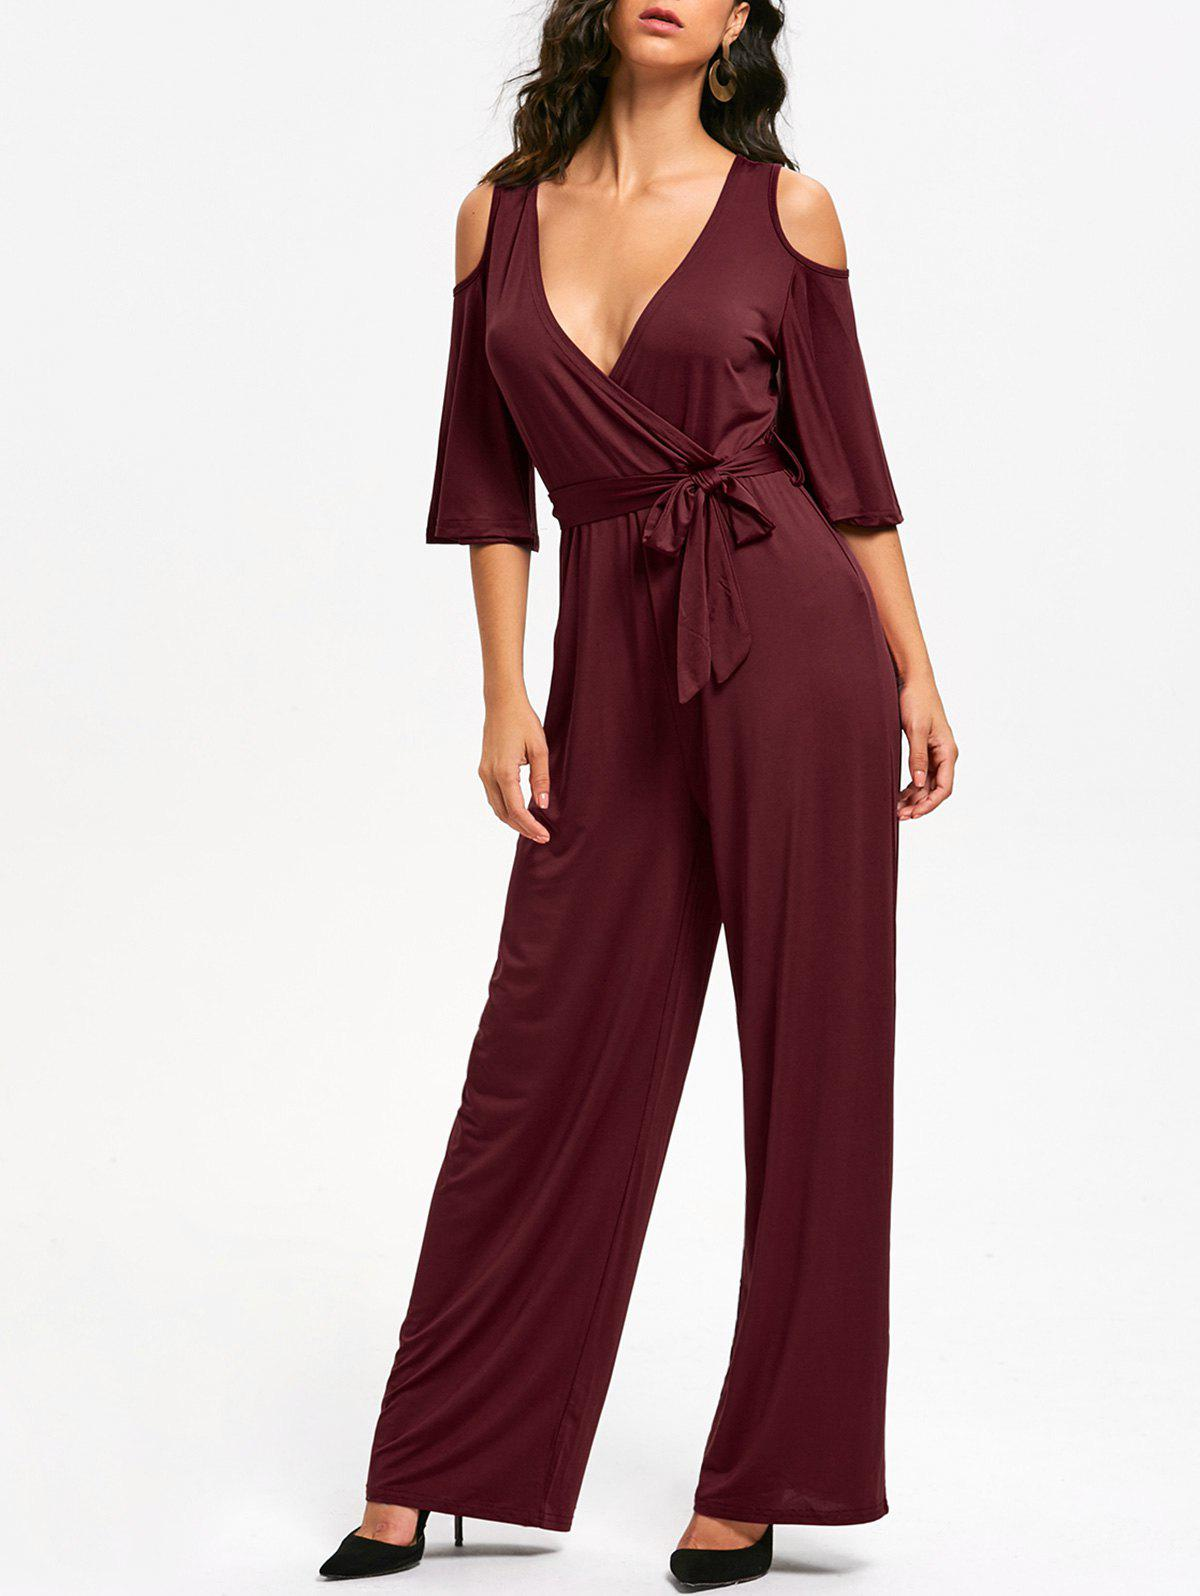 Open Shoulder Low Cut Surplice Jumpsuit - WINE RED L